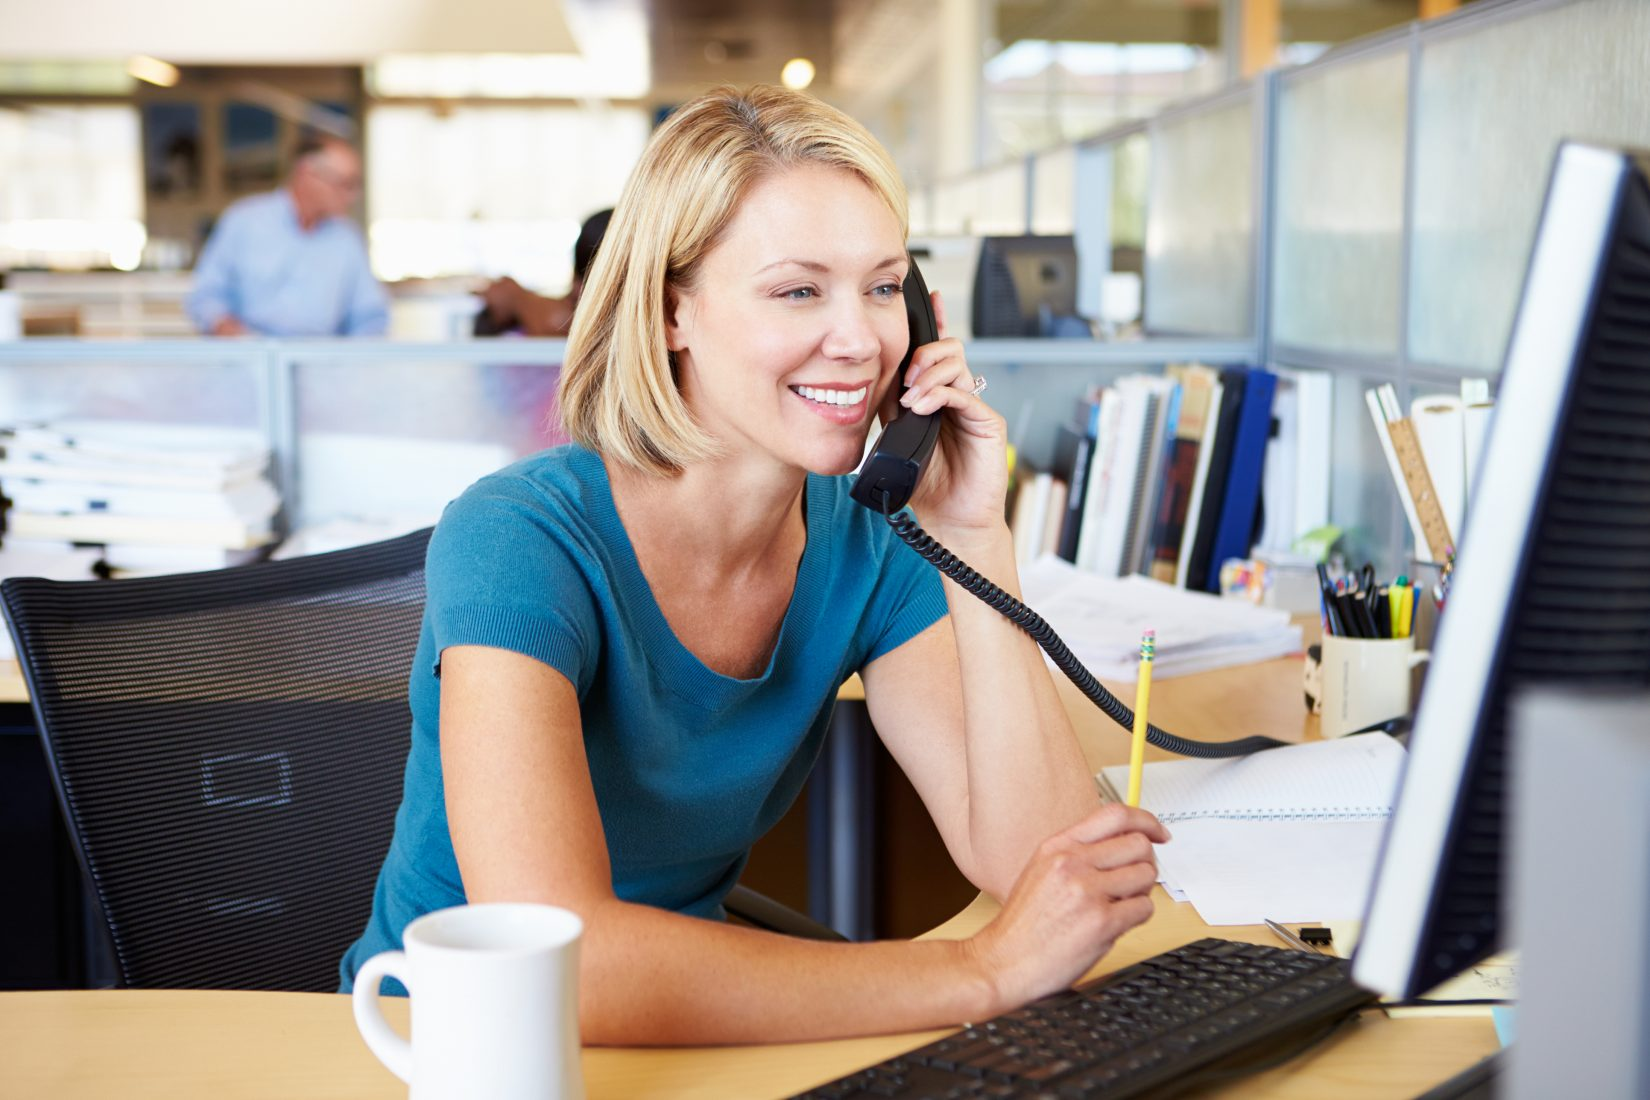 Woman On Phone In Busy Modern Office In Smart/Casual Dresswear